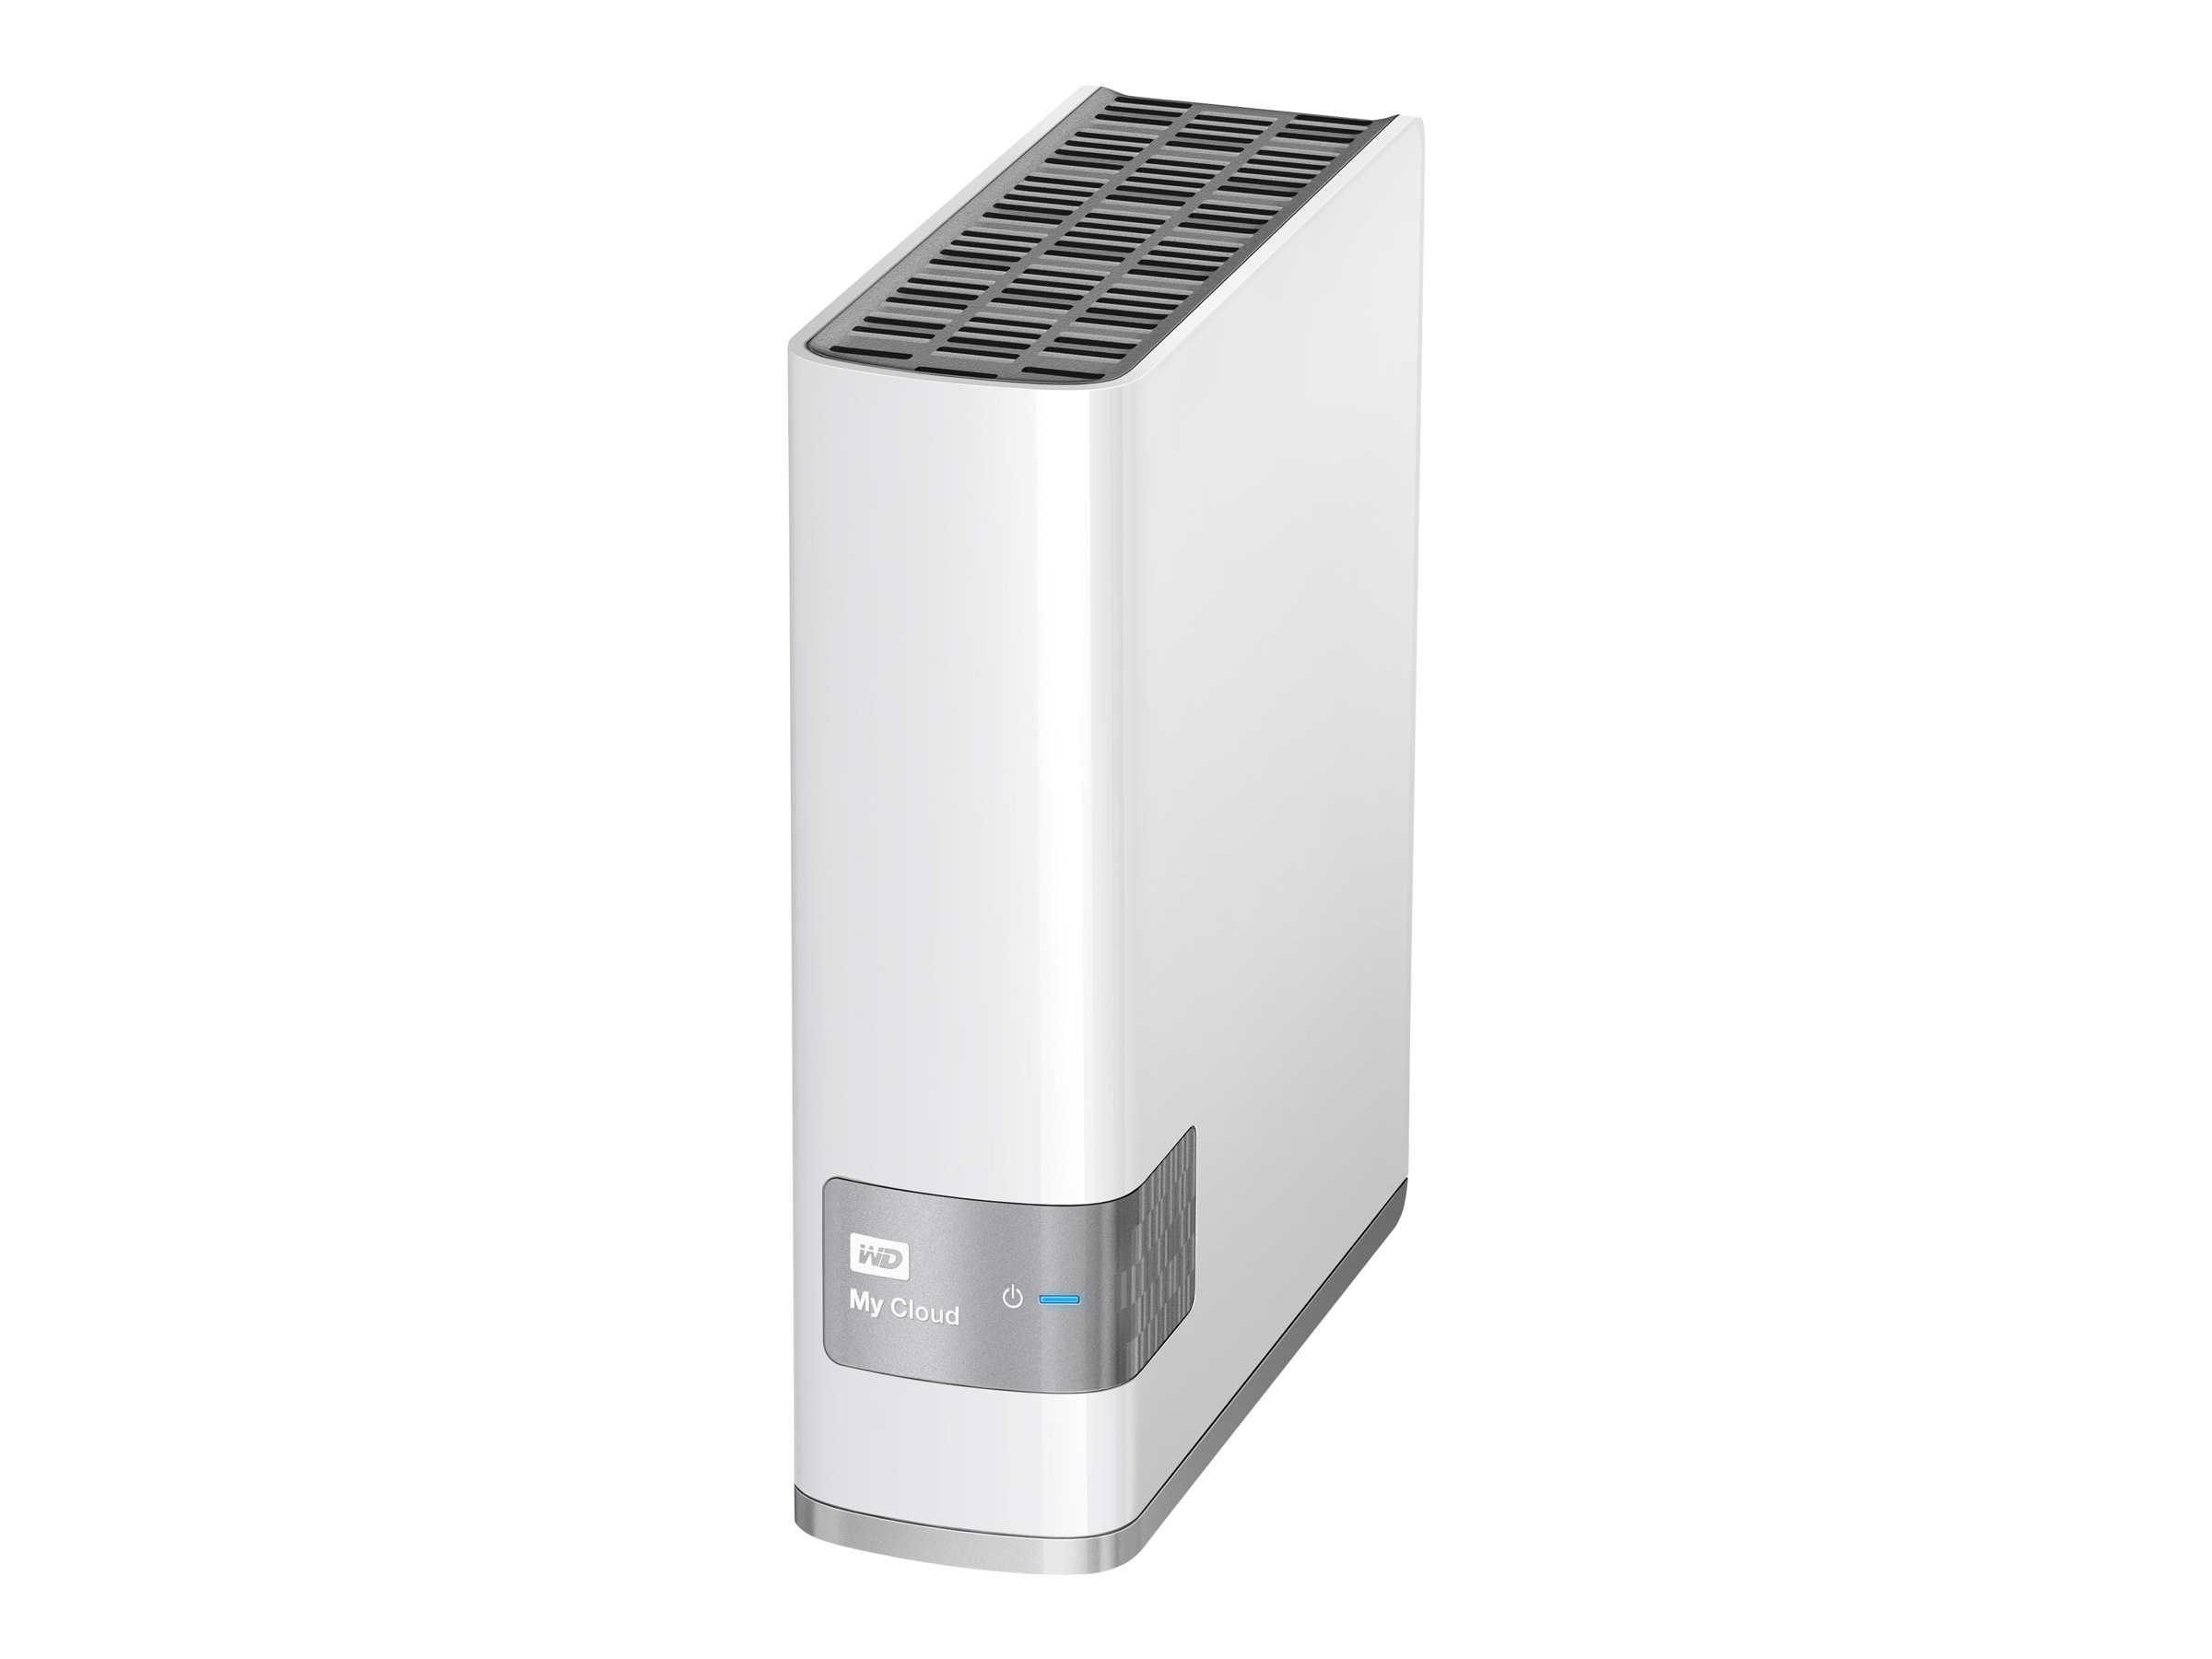 WD WD 2TB My Cloud Personal Cloud Storage, NAS